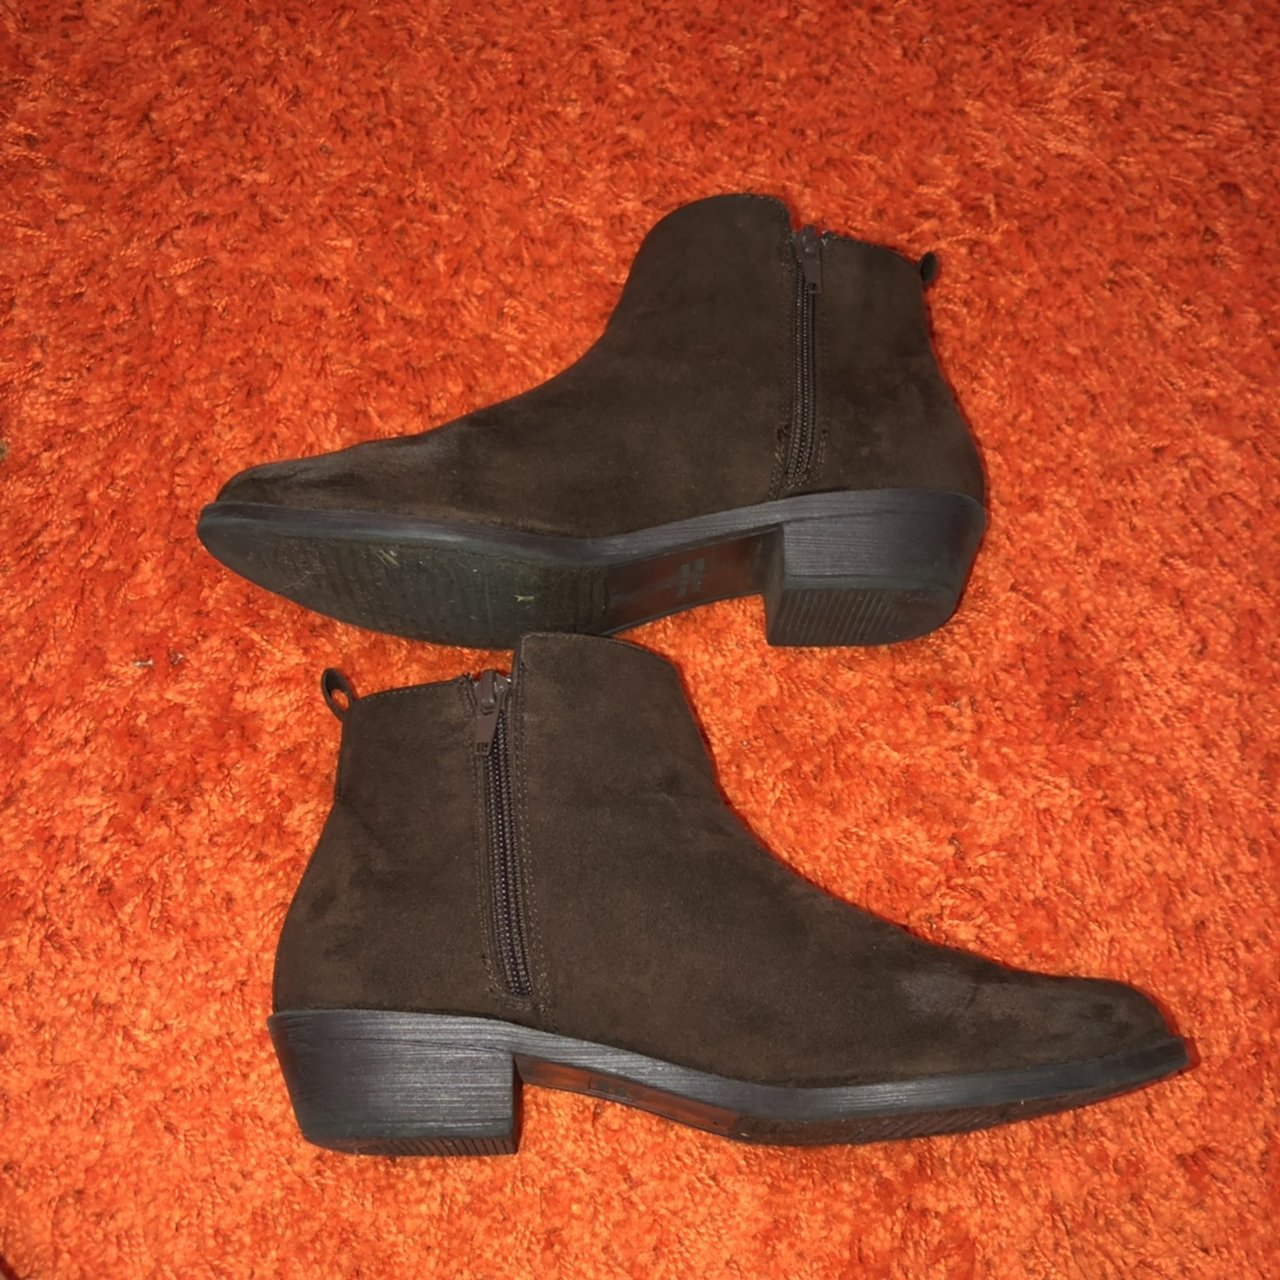 67766c02097 Faux Suede Brown Booties. From Forever 21. Size- 8. Have a - Depop